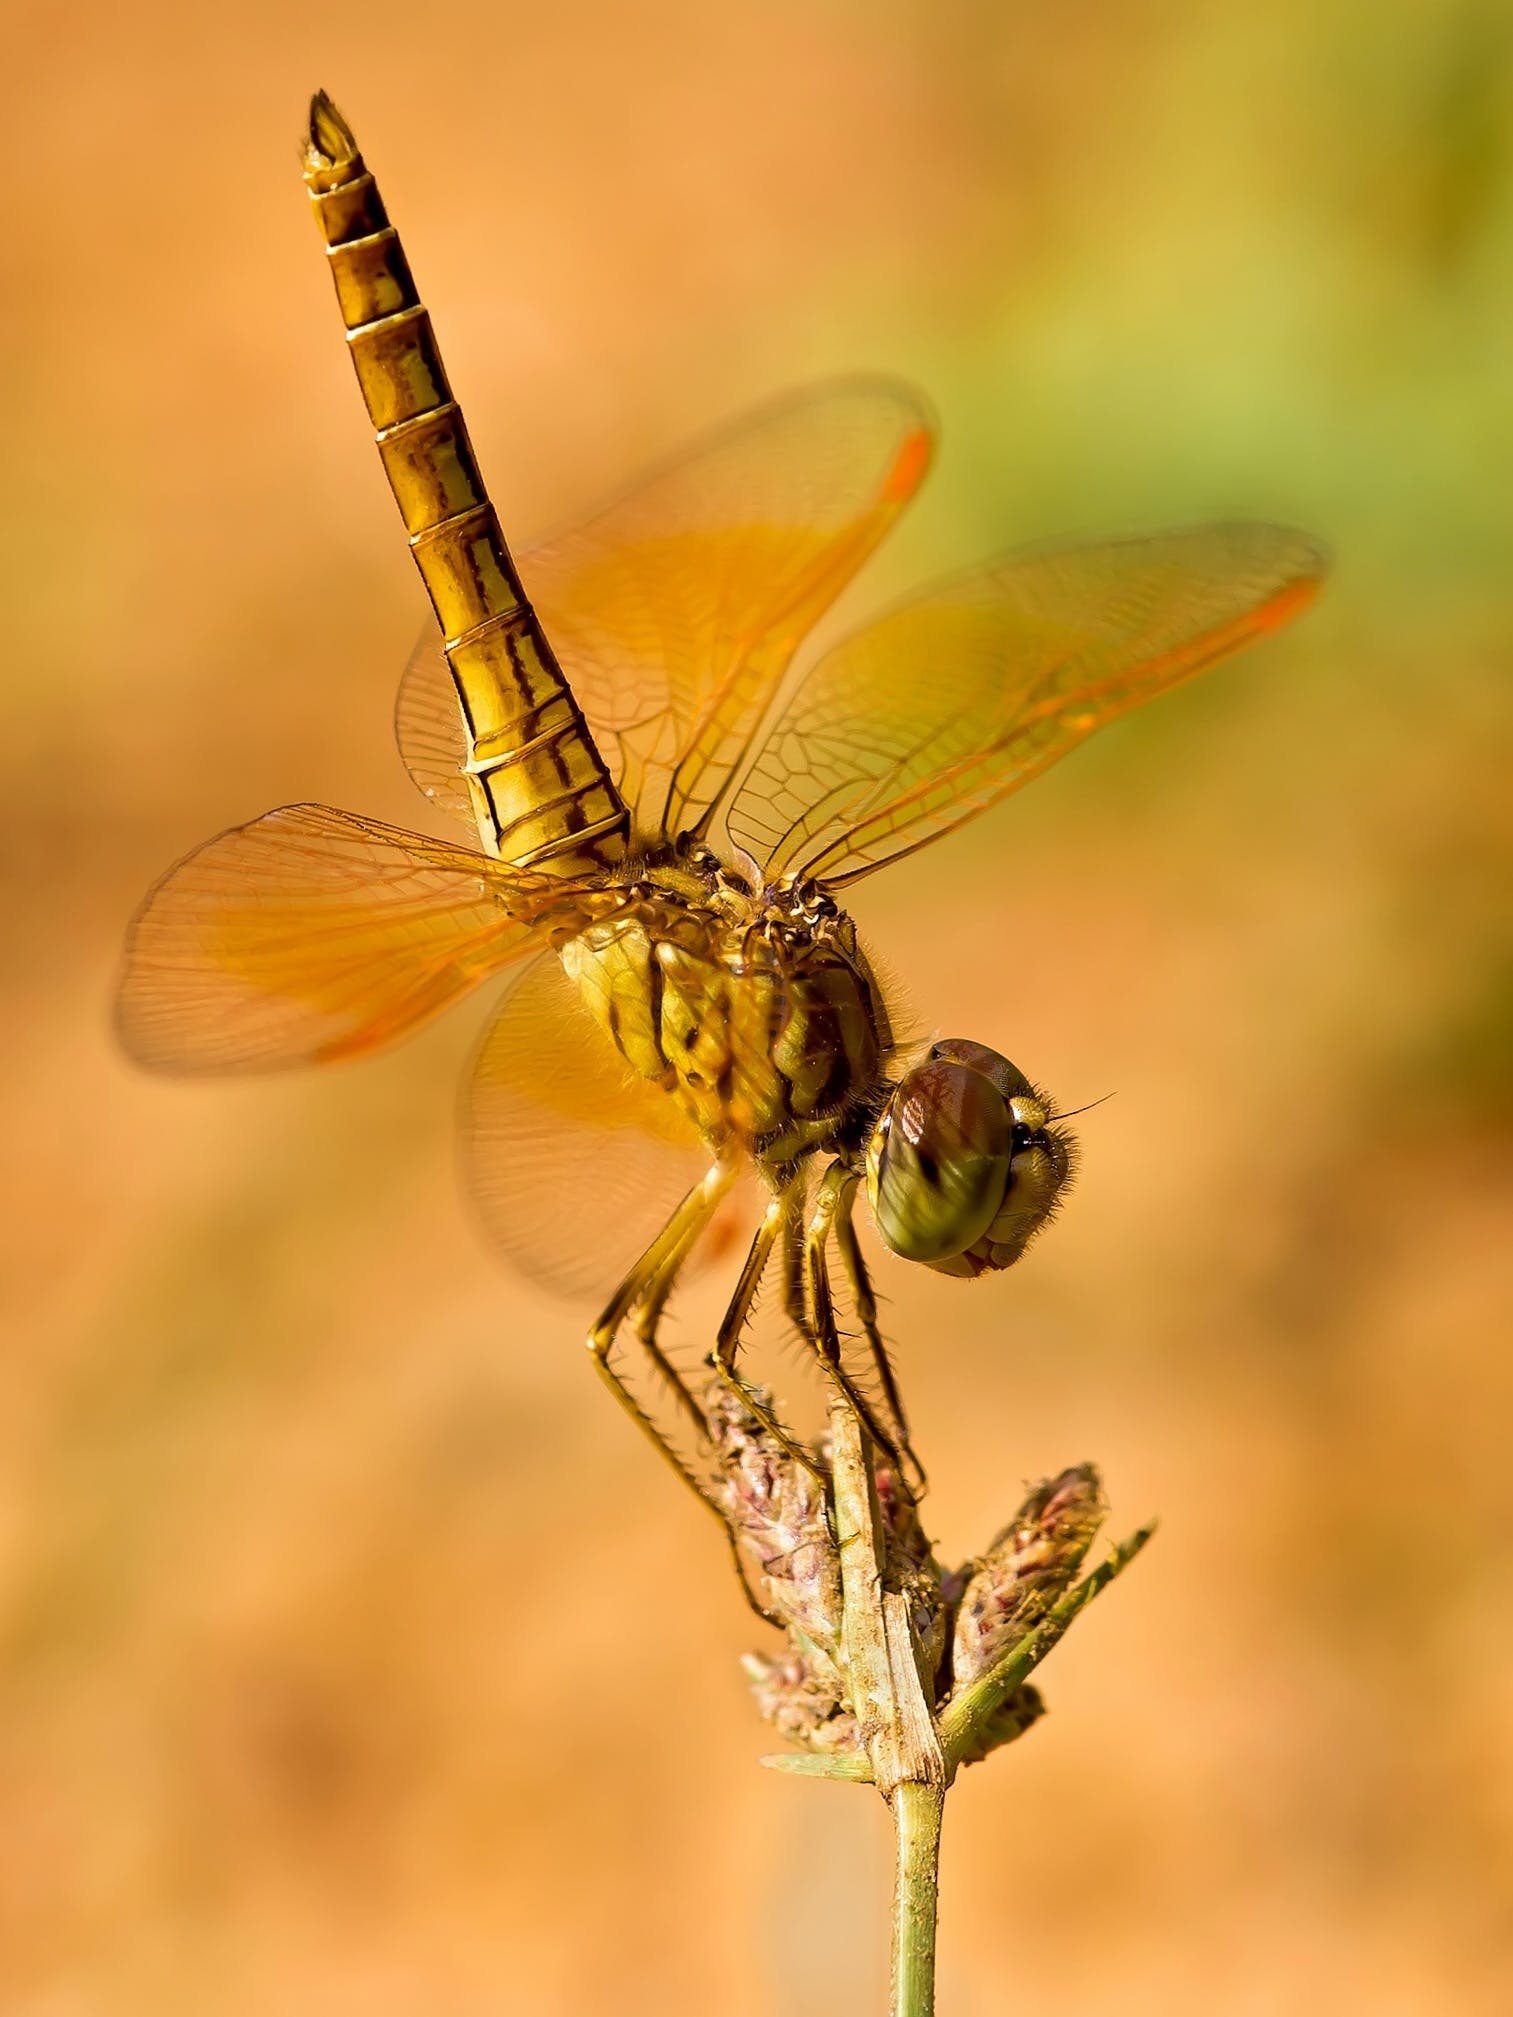 Brown Dragonfly Perching on Flower Bu